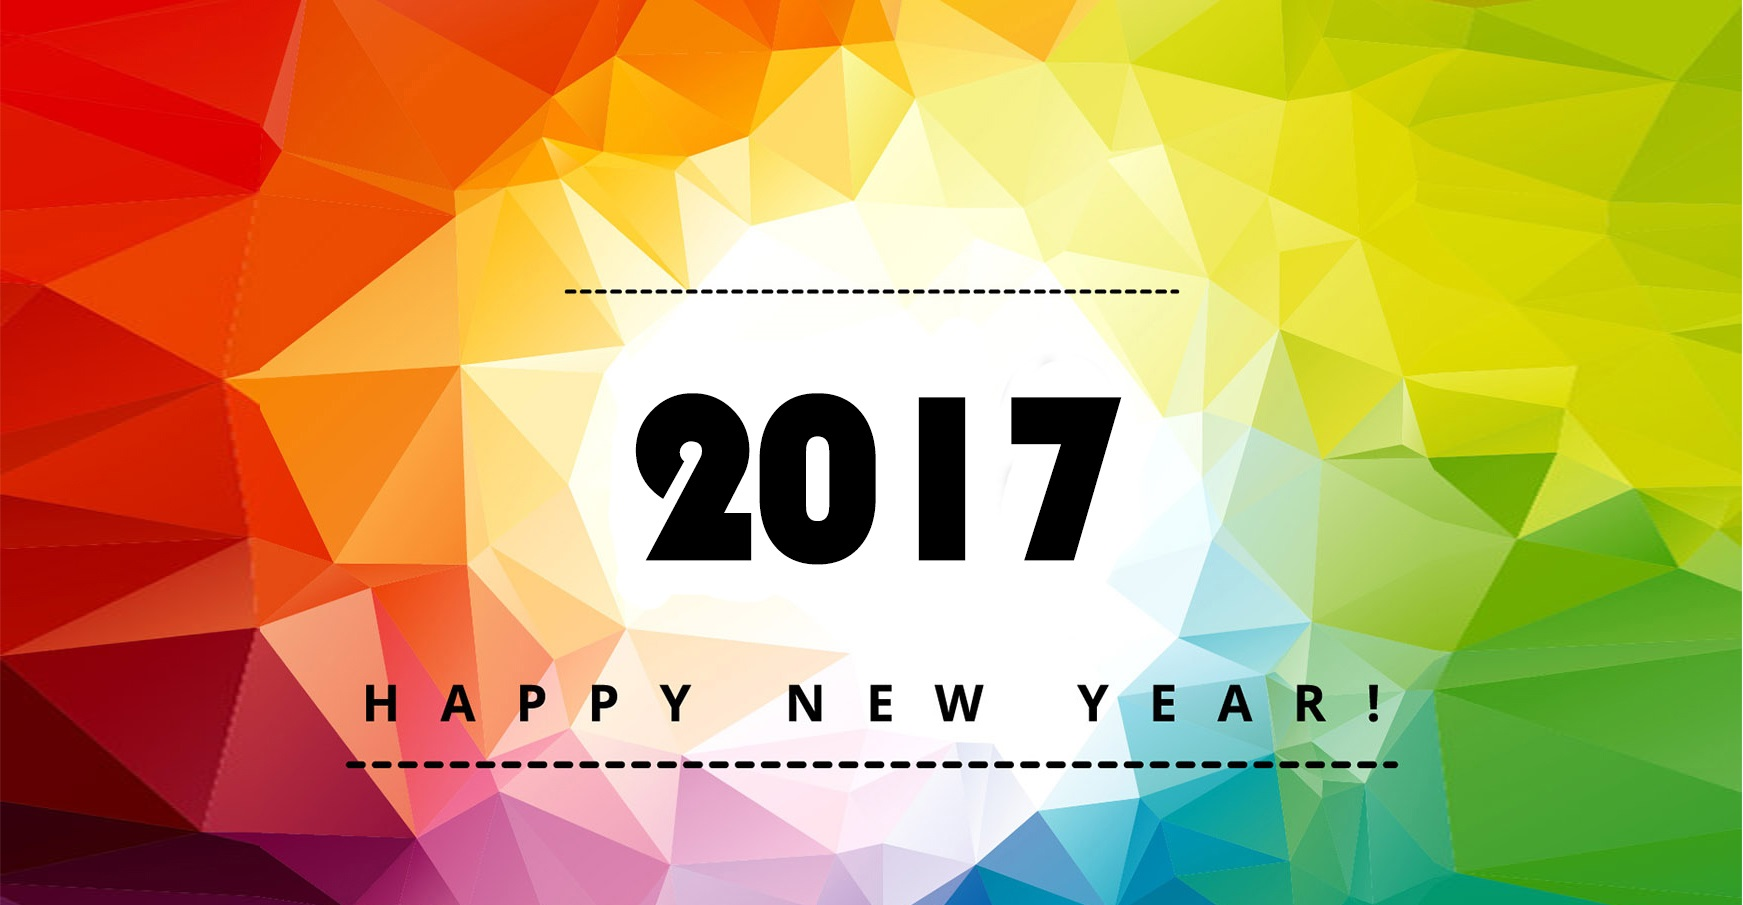 2017} Happy New Year HD Wallpapers, Images (Free Download) - Techicy